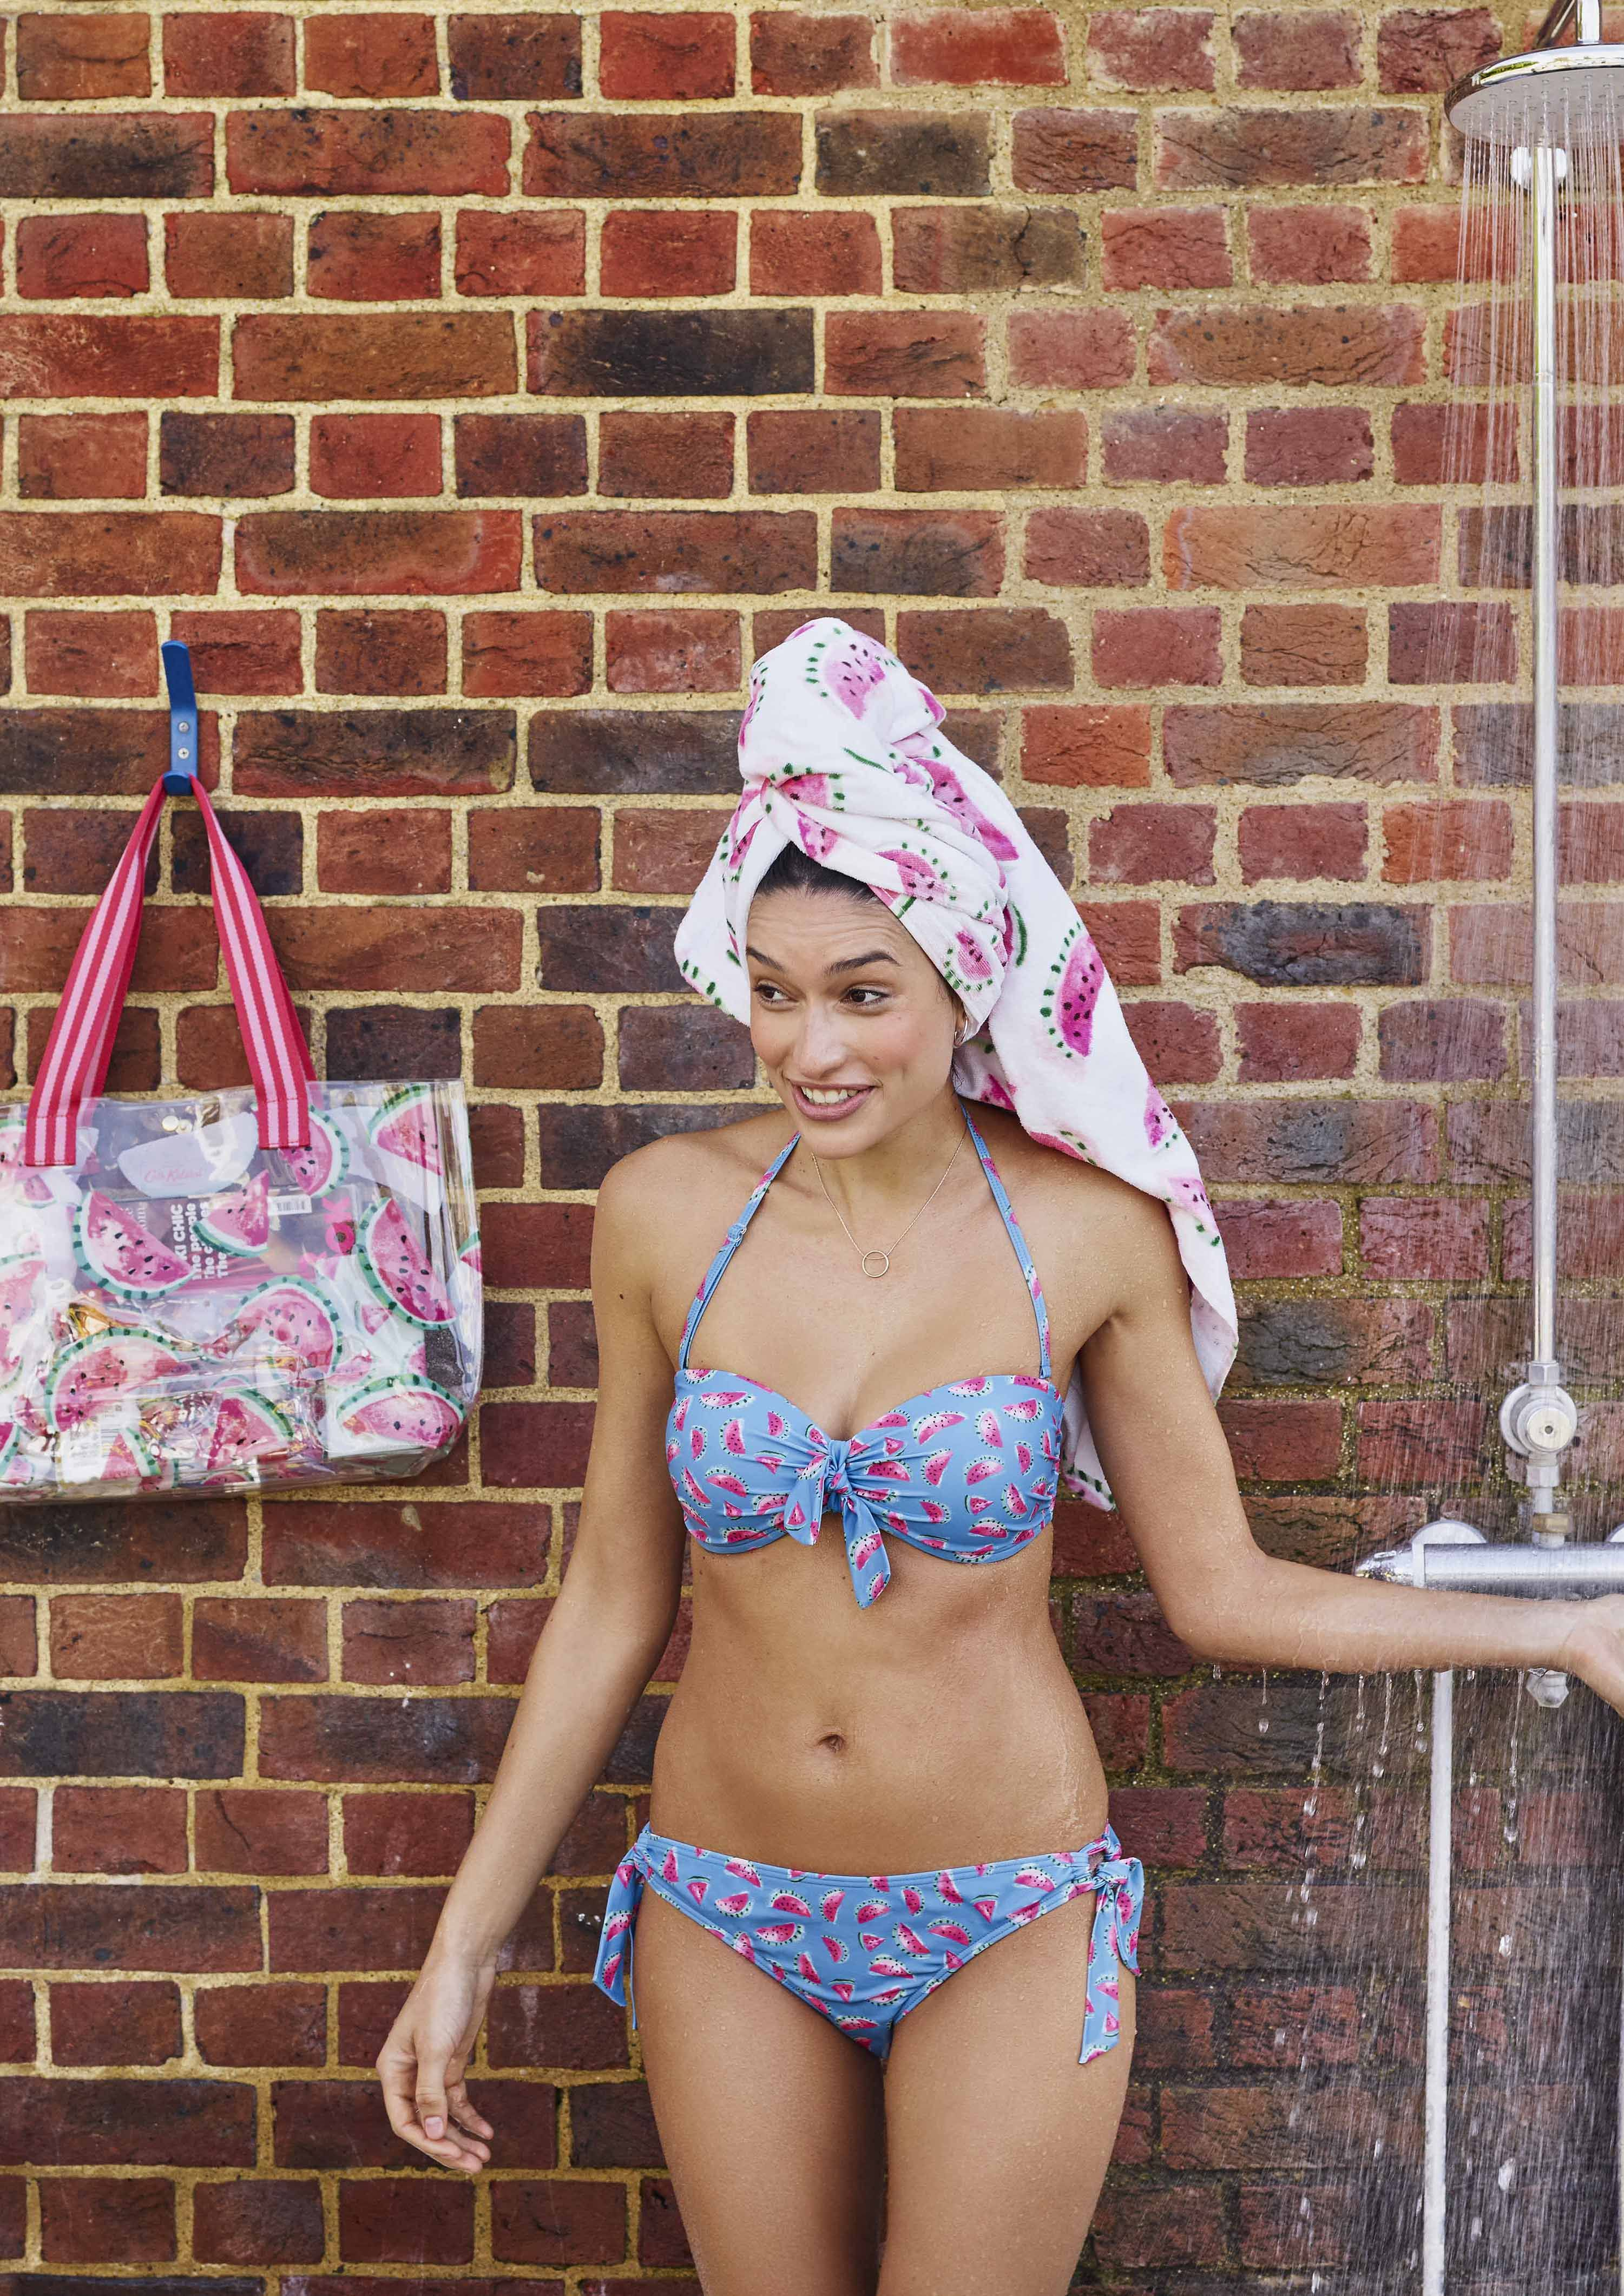 f9065d2f74 Mini Watermelons Bikini - The perfect summer swimwear in a blue watermelon  print. This bikini has a moulded, bandeau style top with a removable  halterneck ...